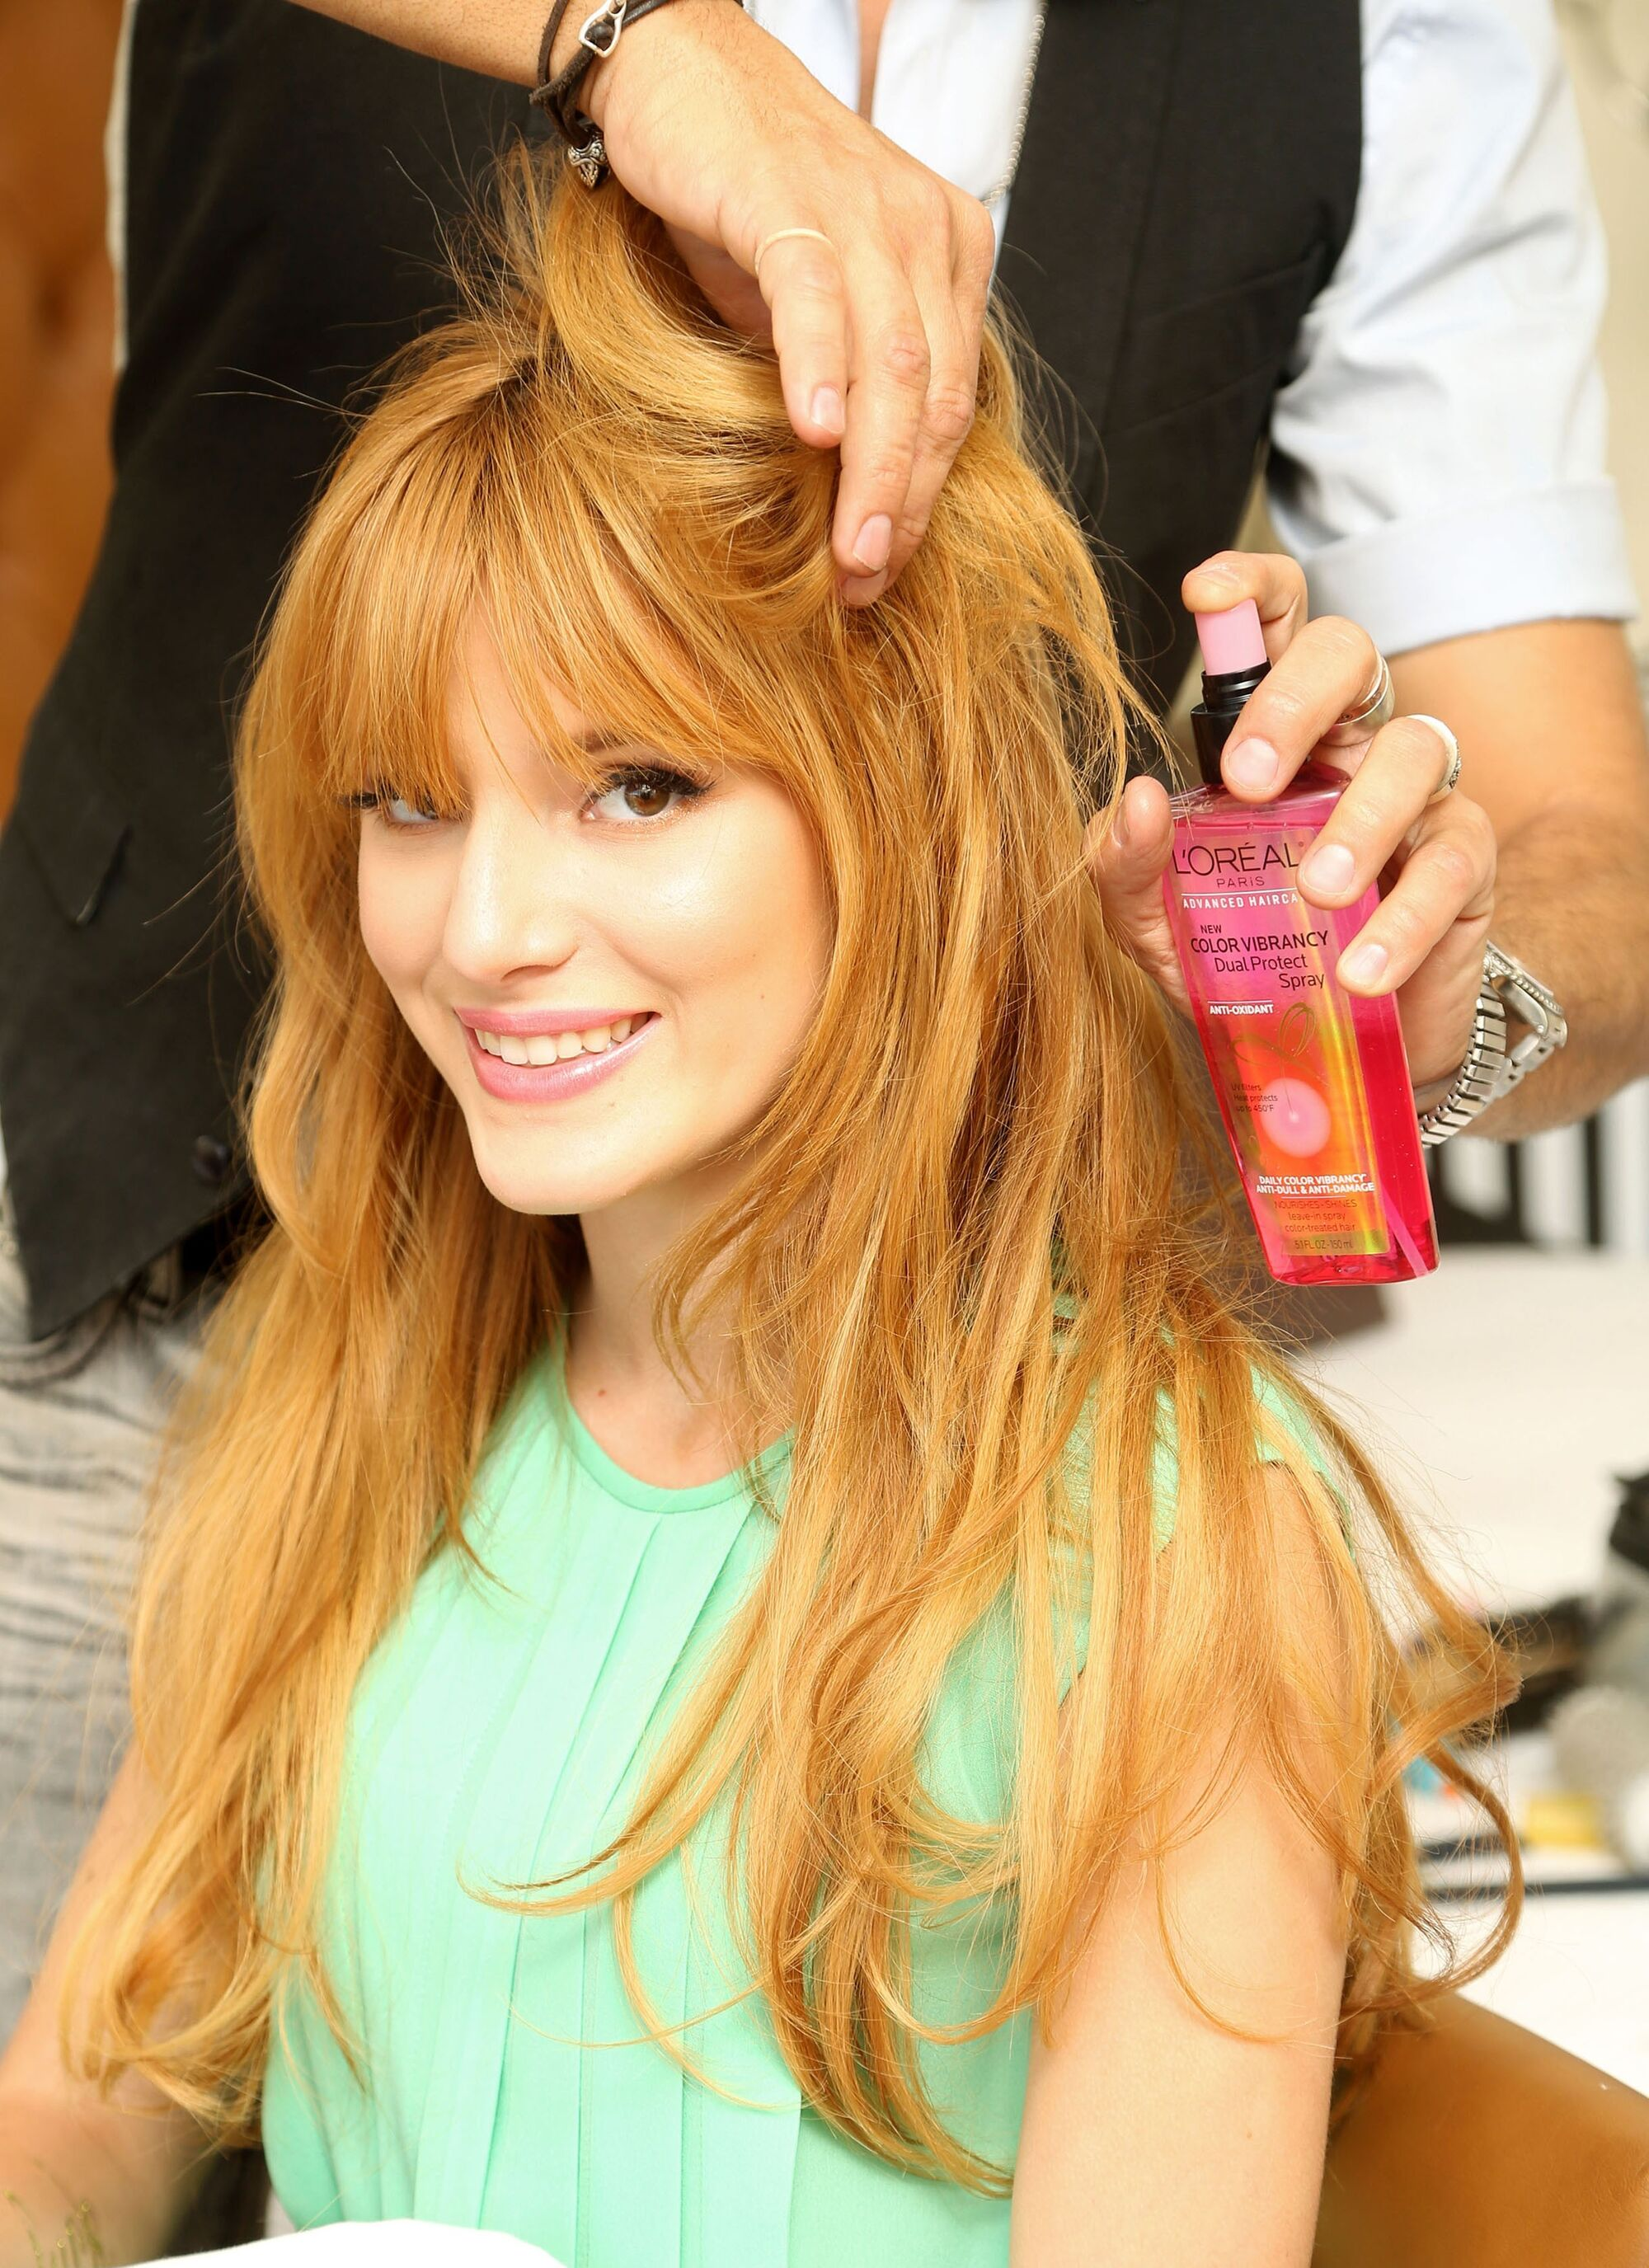 Image  BellathorneLorealsprayonhairjpg  Shake It Up Wiki